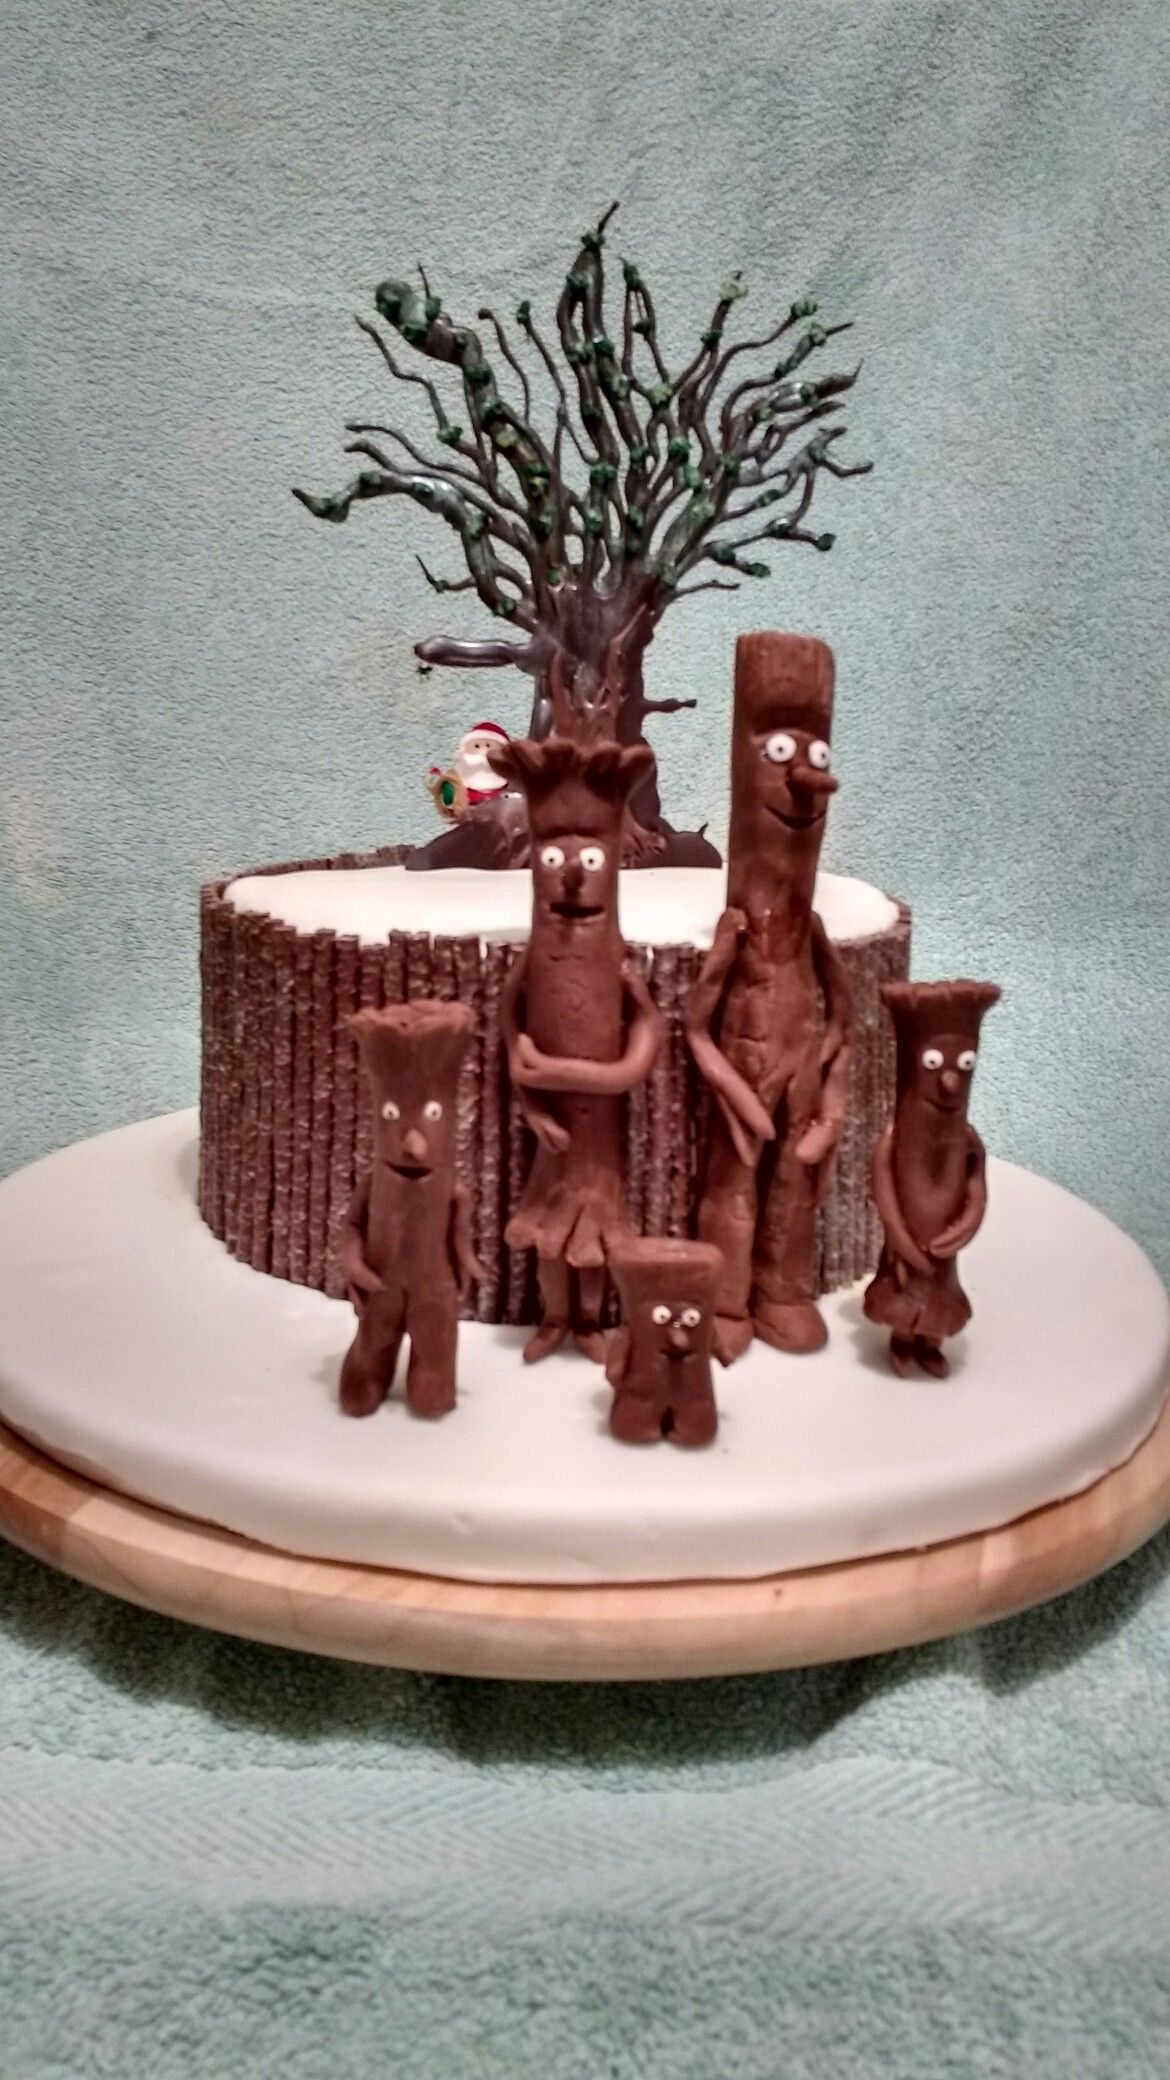 Stickman birthday cake My son wanted Father Christmas in it too